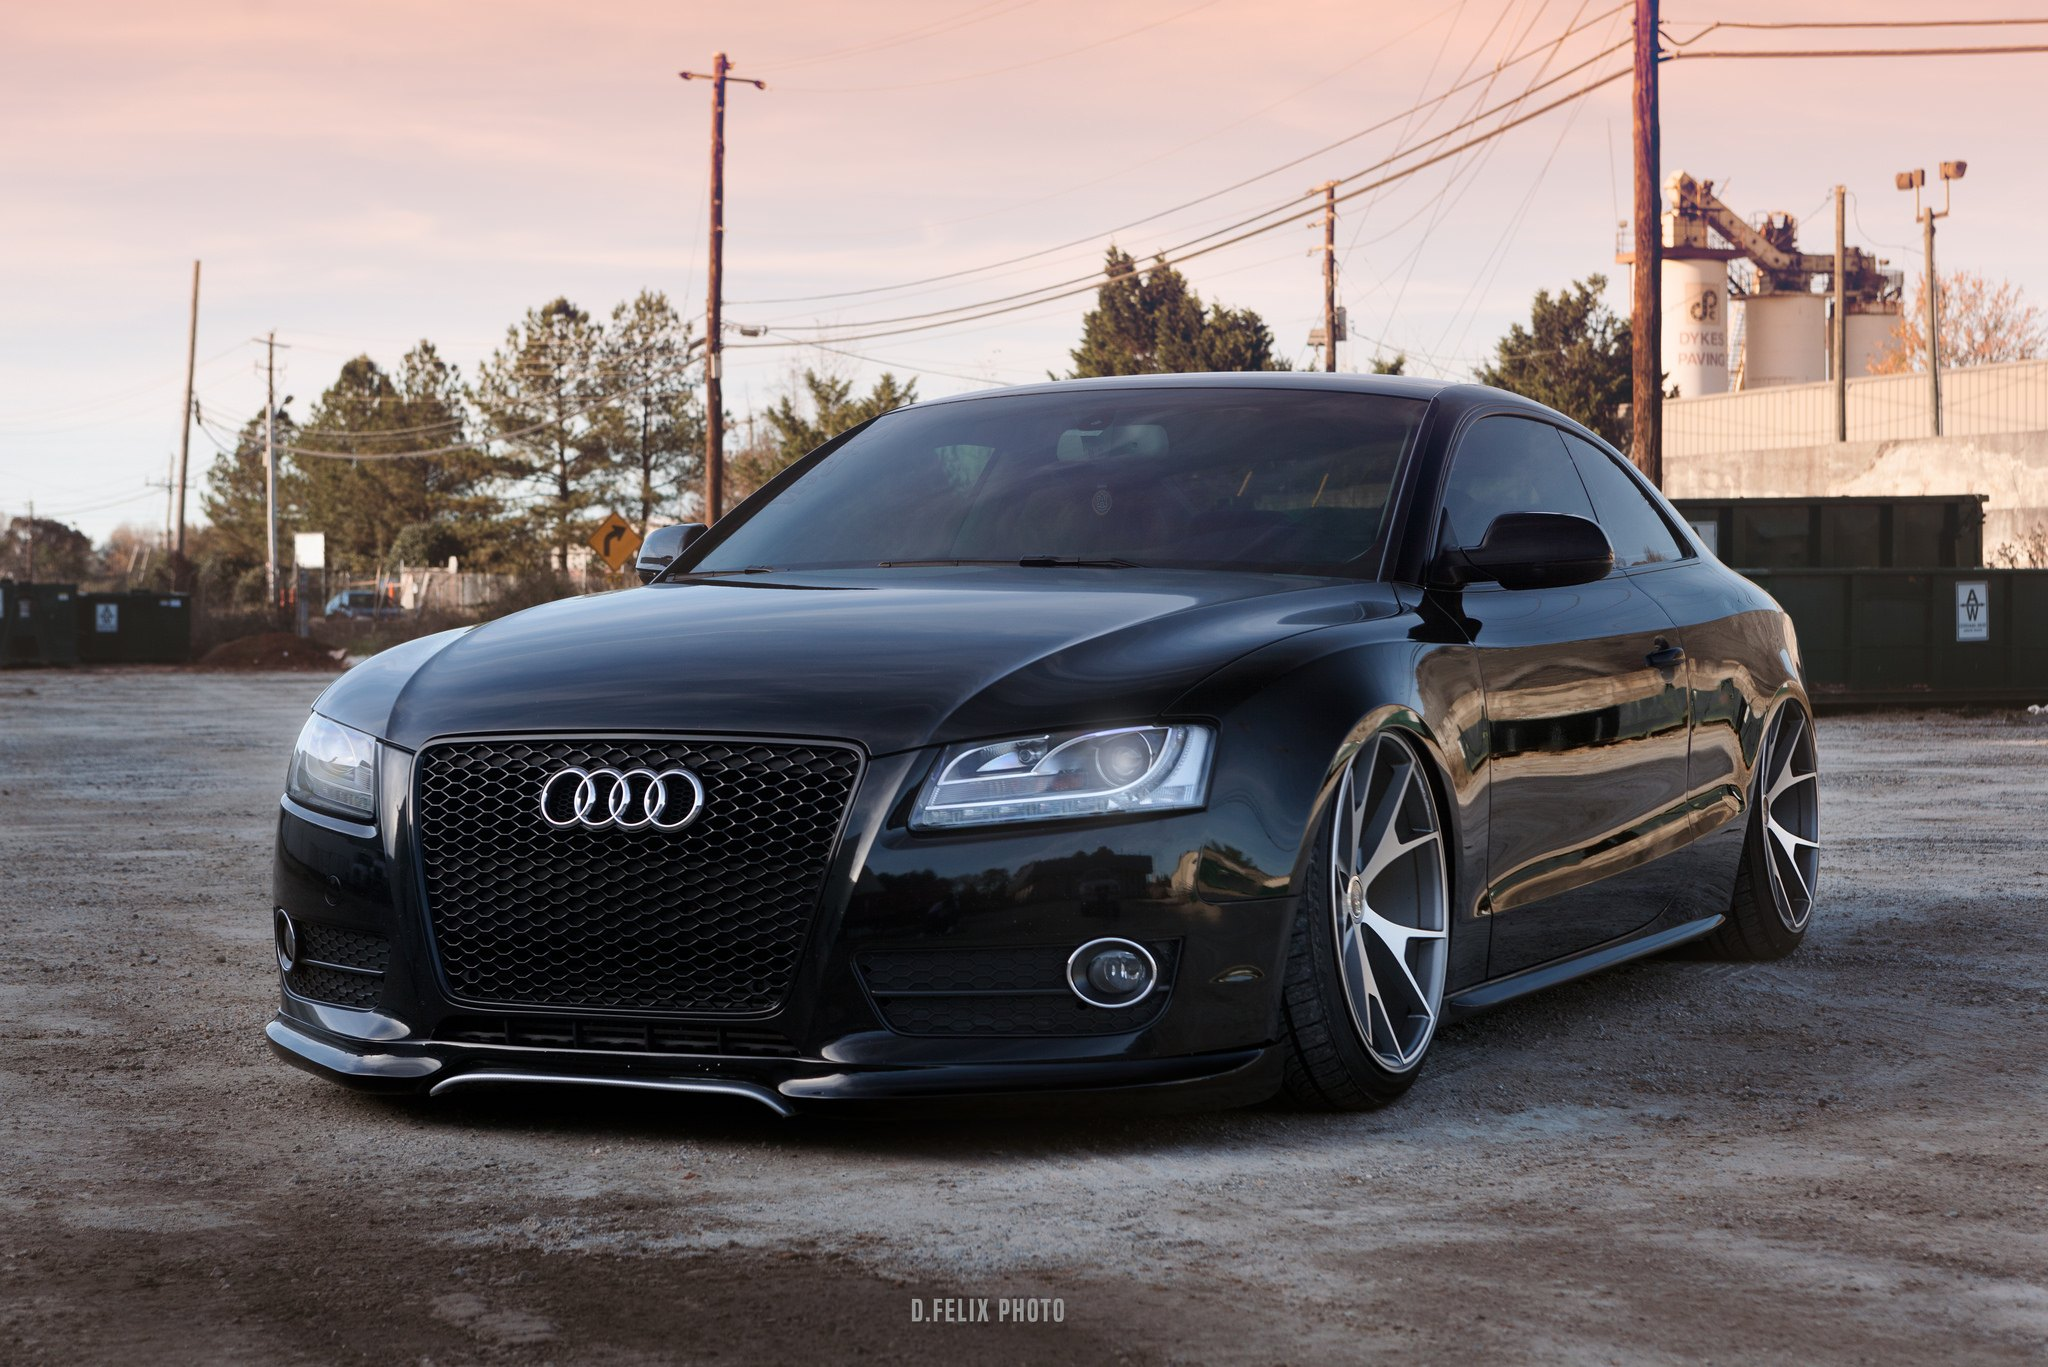 Progressive Dodge >> Custom 2009 Audi A5 | Images, Mods, Photos, Upgrades — CARiD.com Gallery